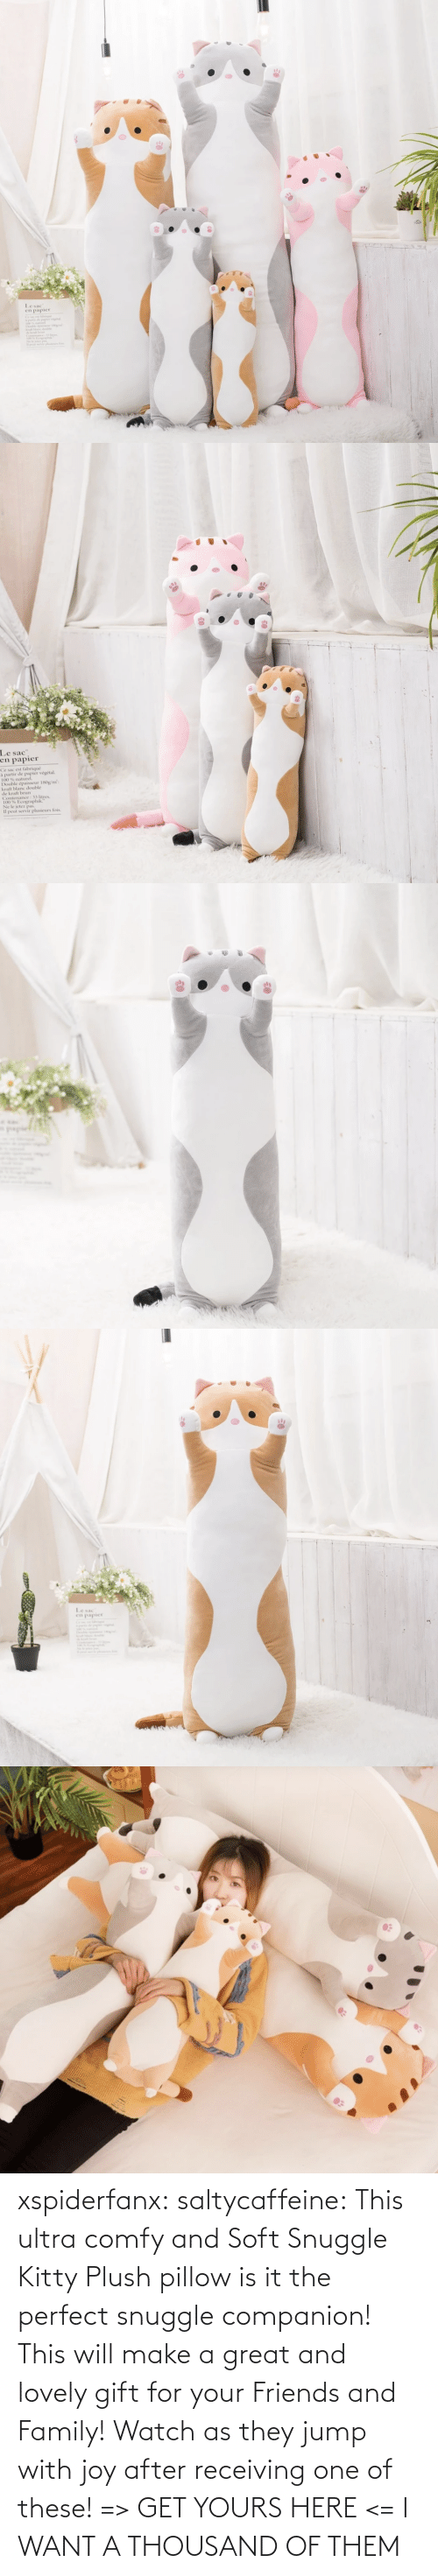 make a: xspiderfanx:  saltycaffeine: This ultra comfy and Soft Snuggle Kitty Plush pillow is it the perfect snuggle companion! This will make a great and lovely gift for your Friends and Family! Watch as they jump with joy after receiving one of these! => GET YOURS HERE <=    I WANT A THOUSAND OF THEM